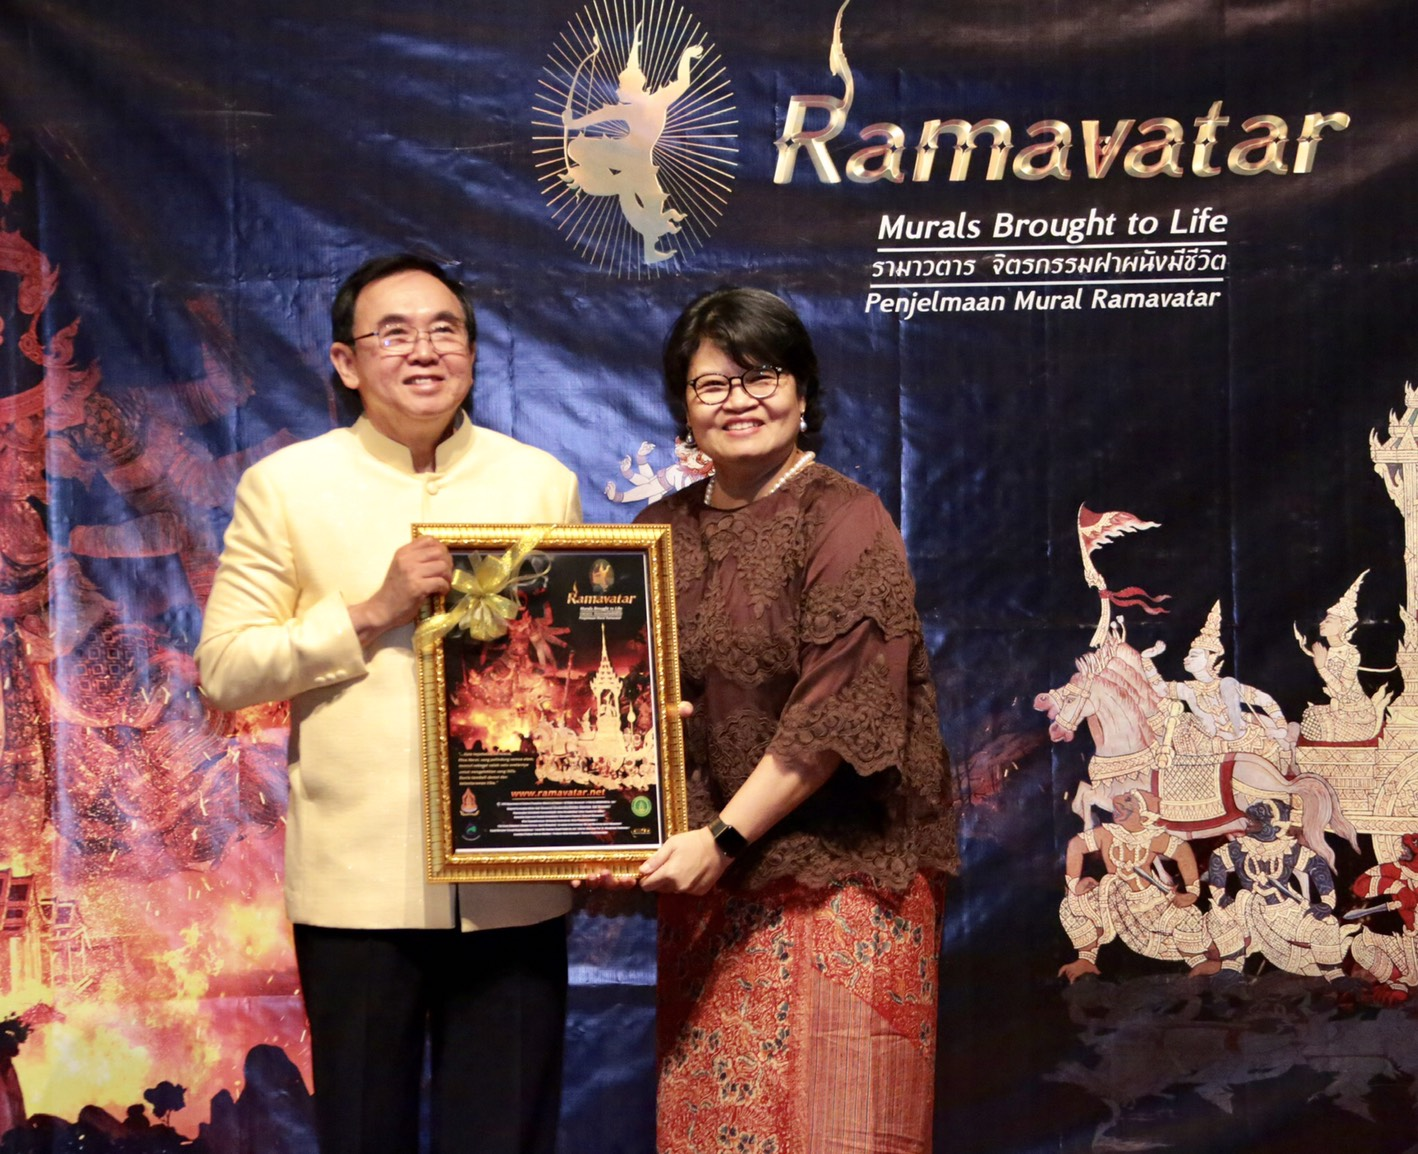 The government launched the Ramayana Animation episode